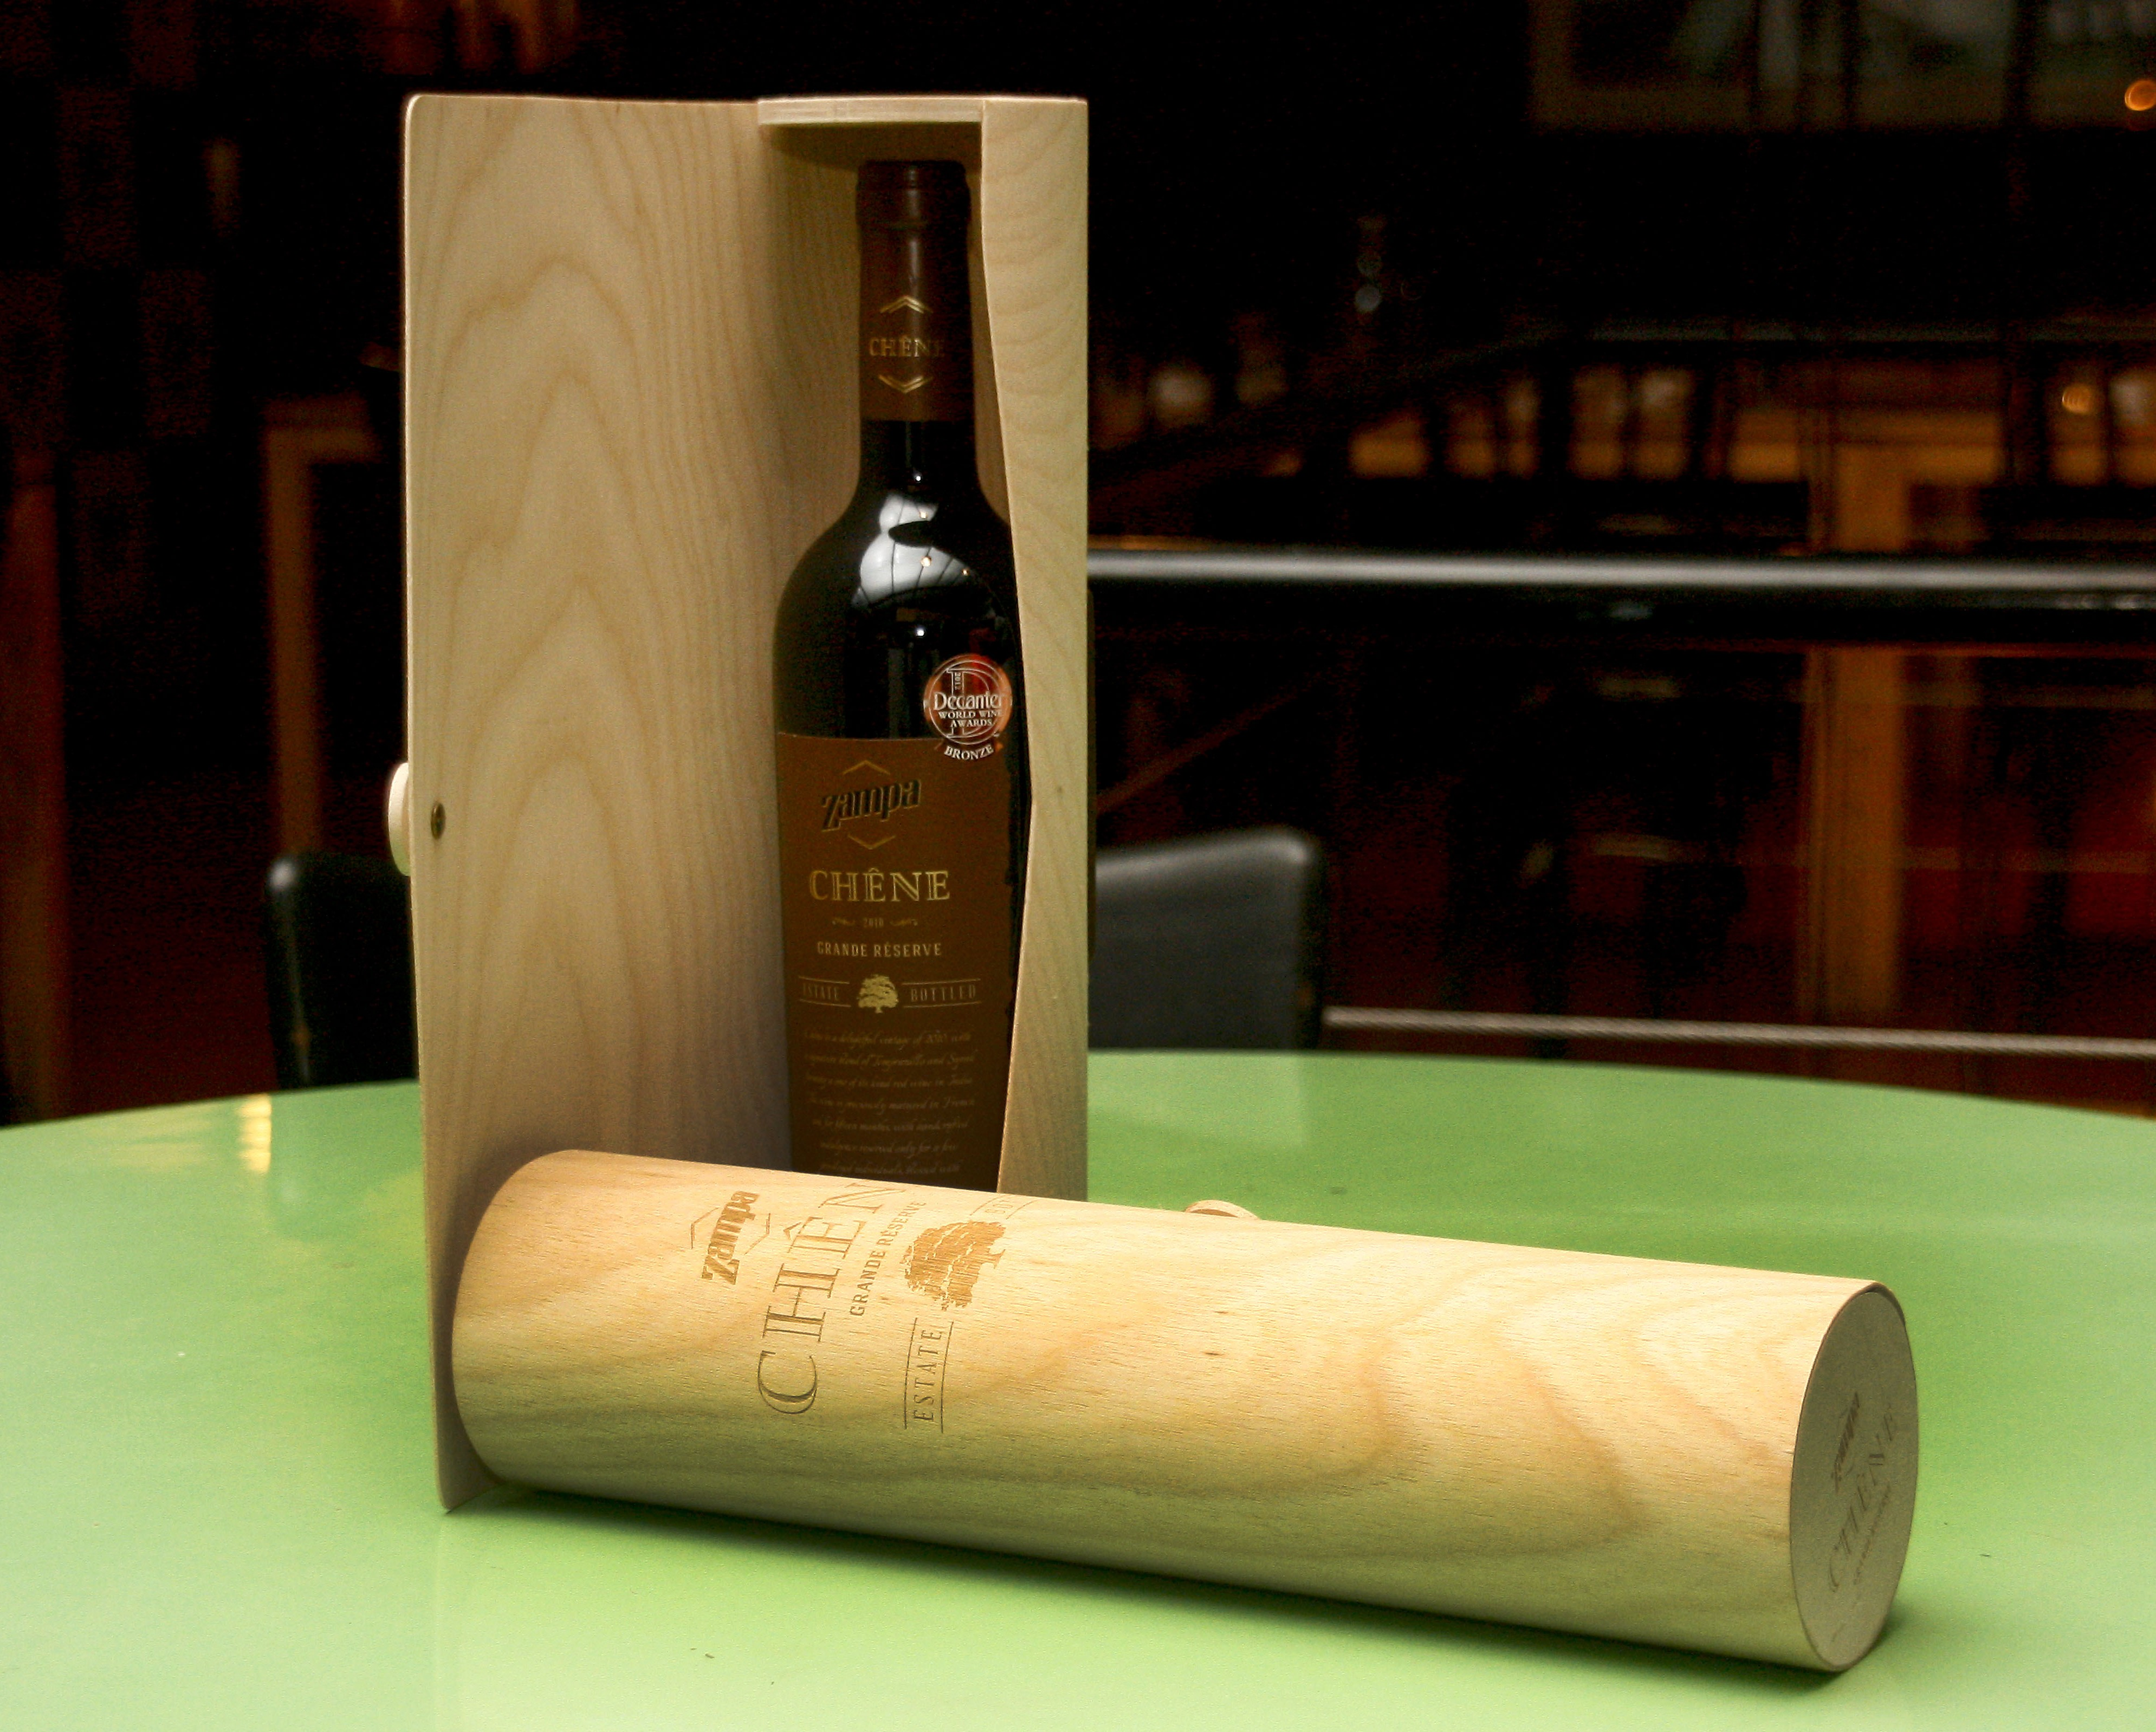 New in the market: Chêne Grande Reserve 2010